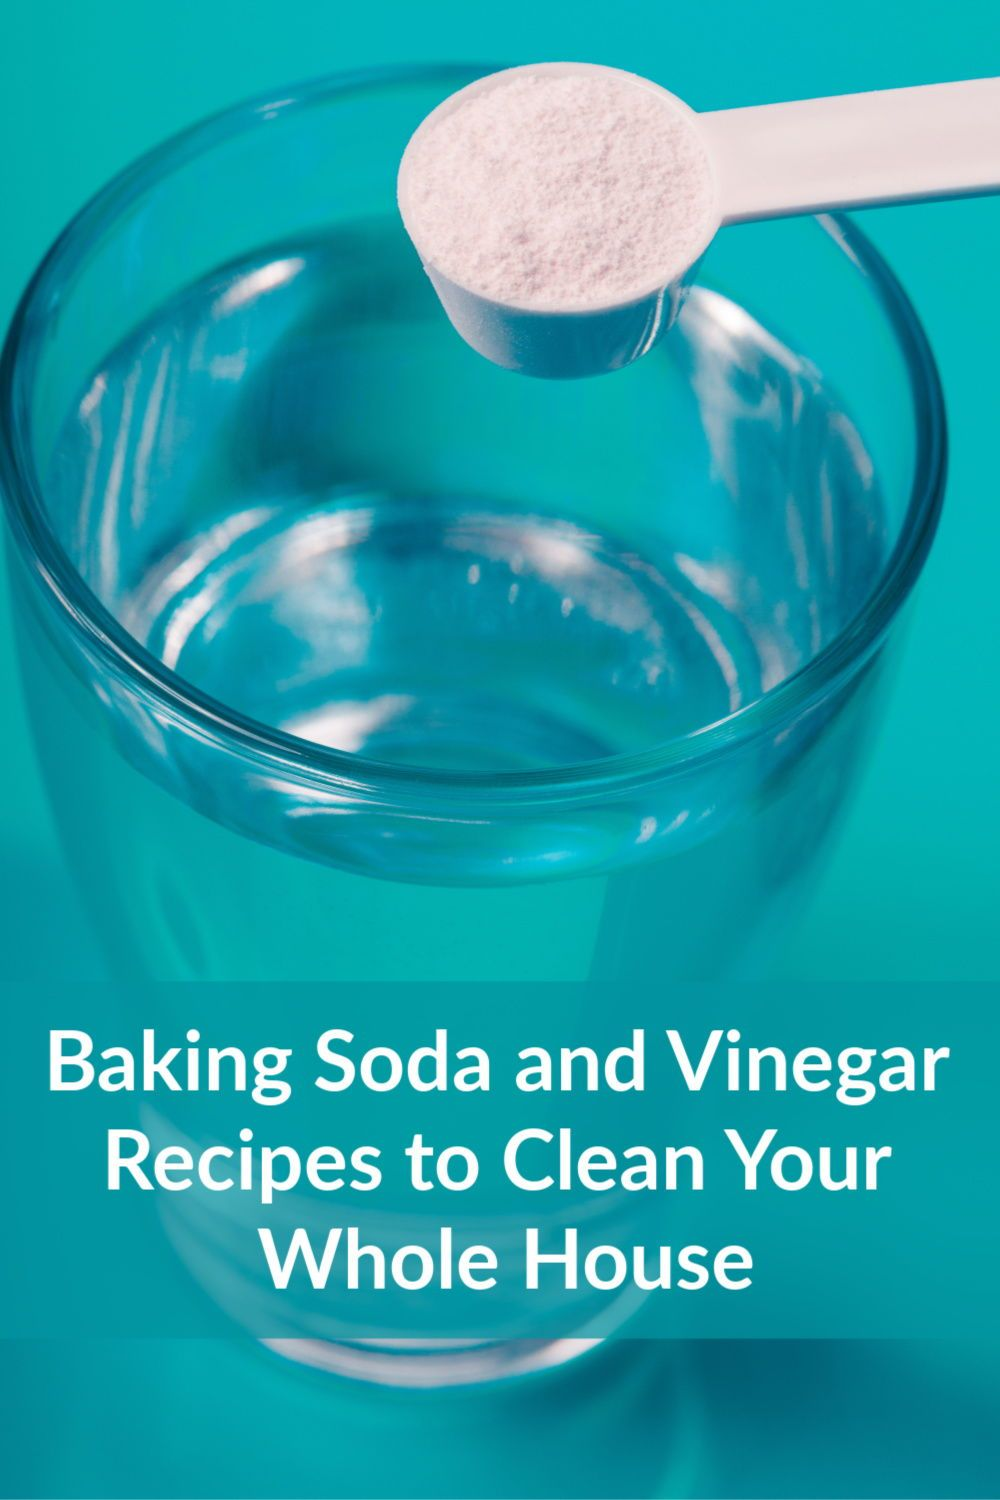 Baking Soda and Vinegar Recipes for Sparkly Clean